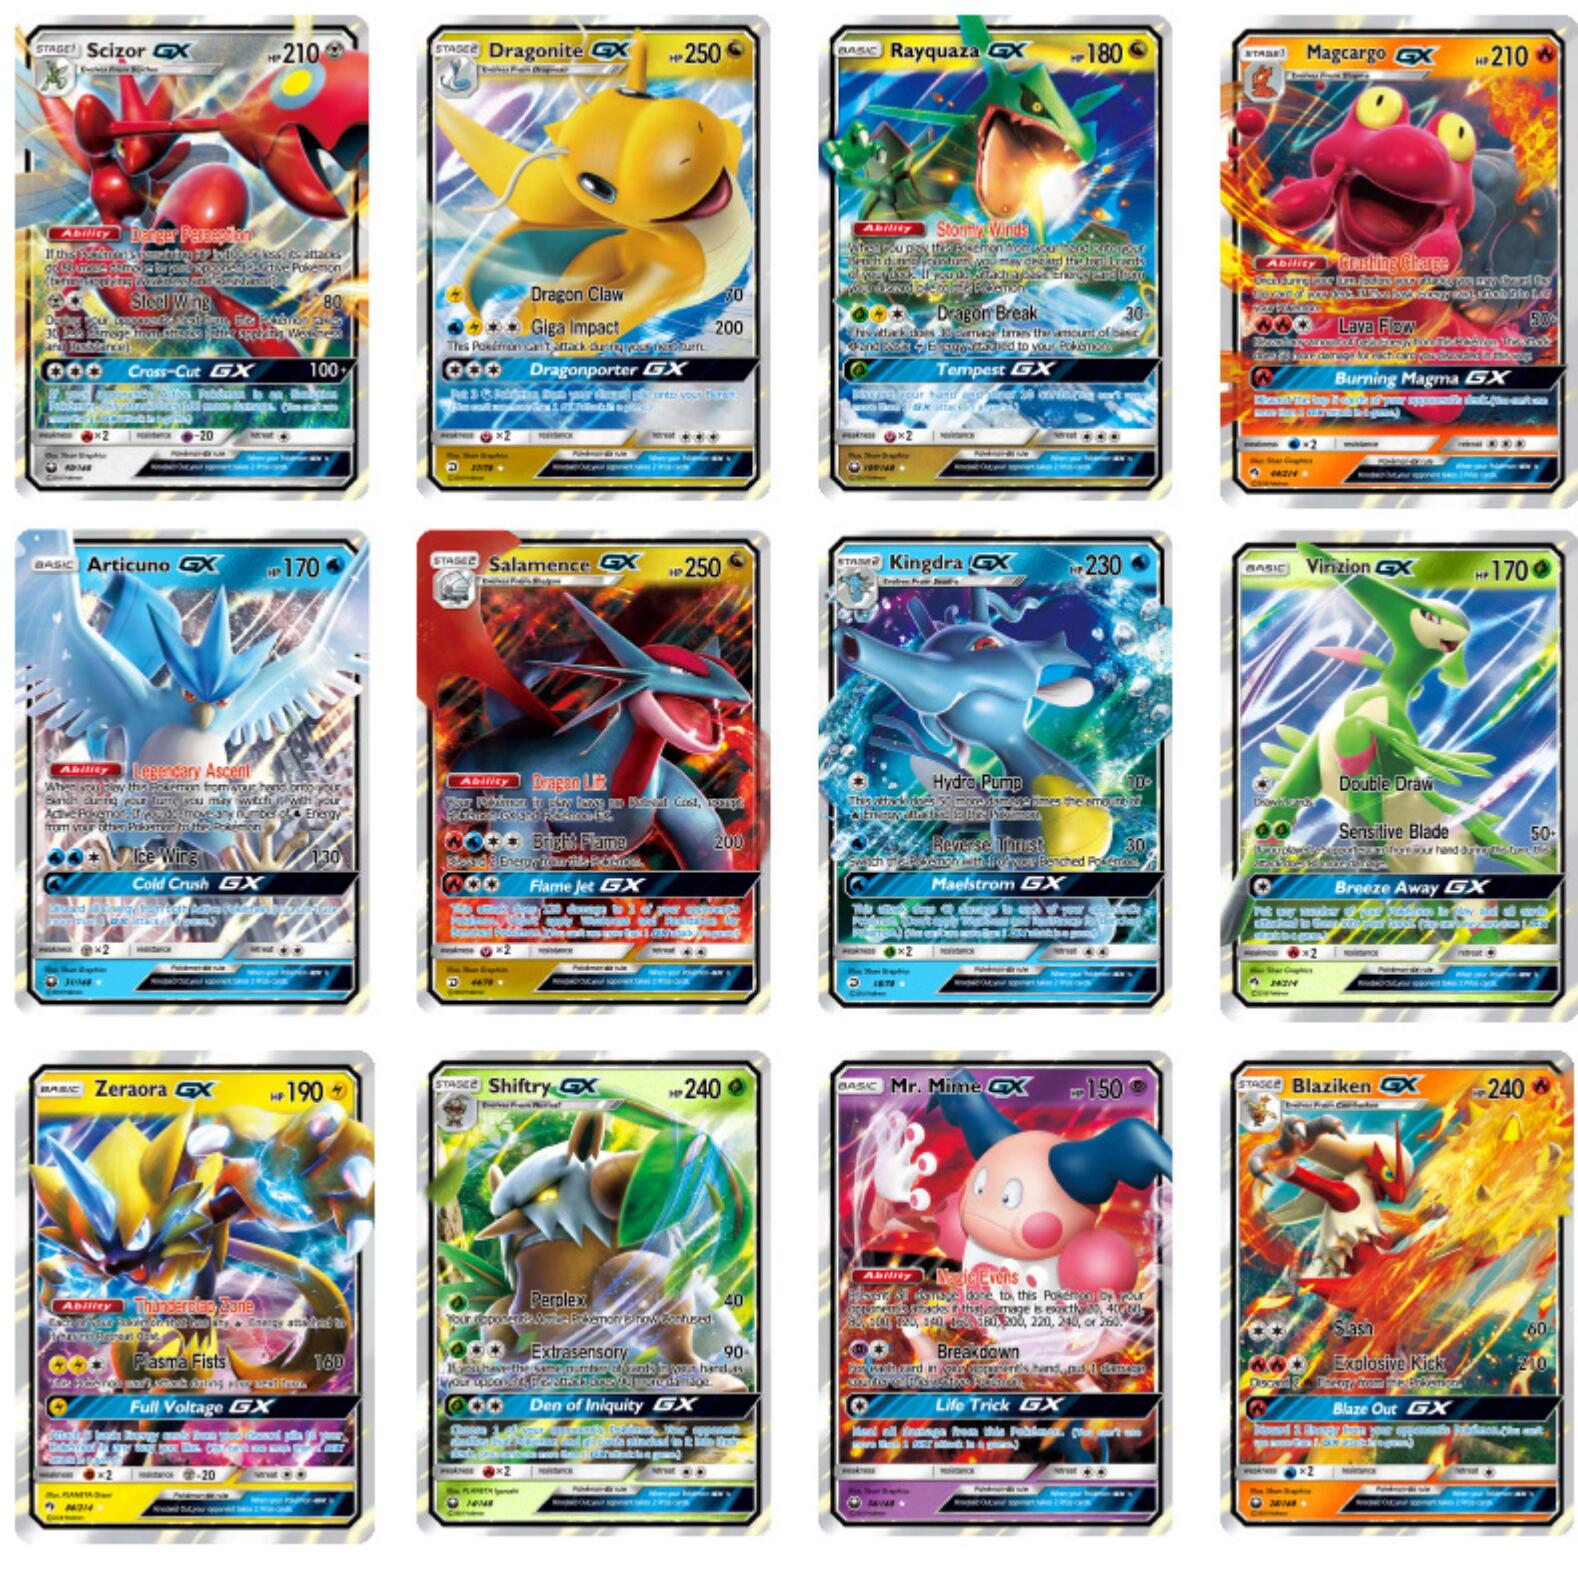 no-repeat-200-pcs-font-b-pokemons-b-font-gx-for-takara-tomy-carte-cards-gx-shining-game-battle-carte-card-game-for-children-toy